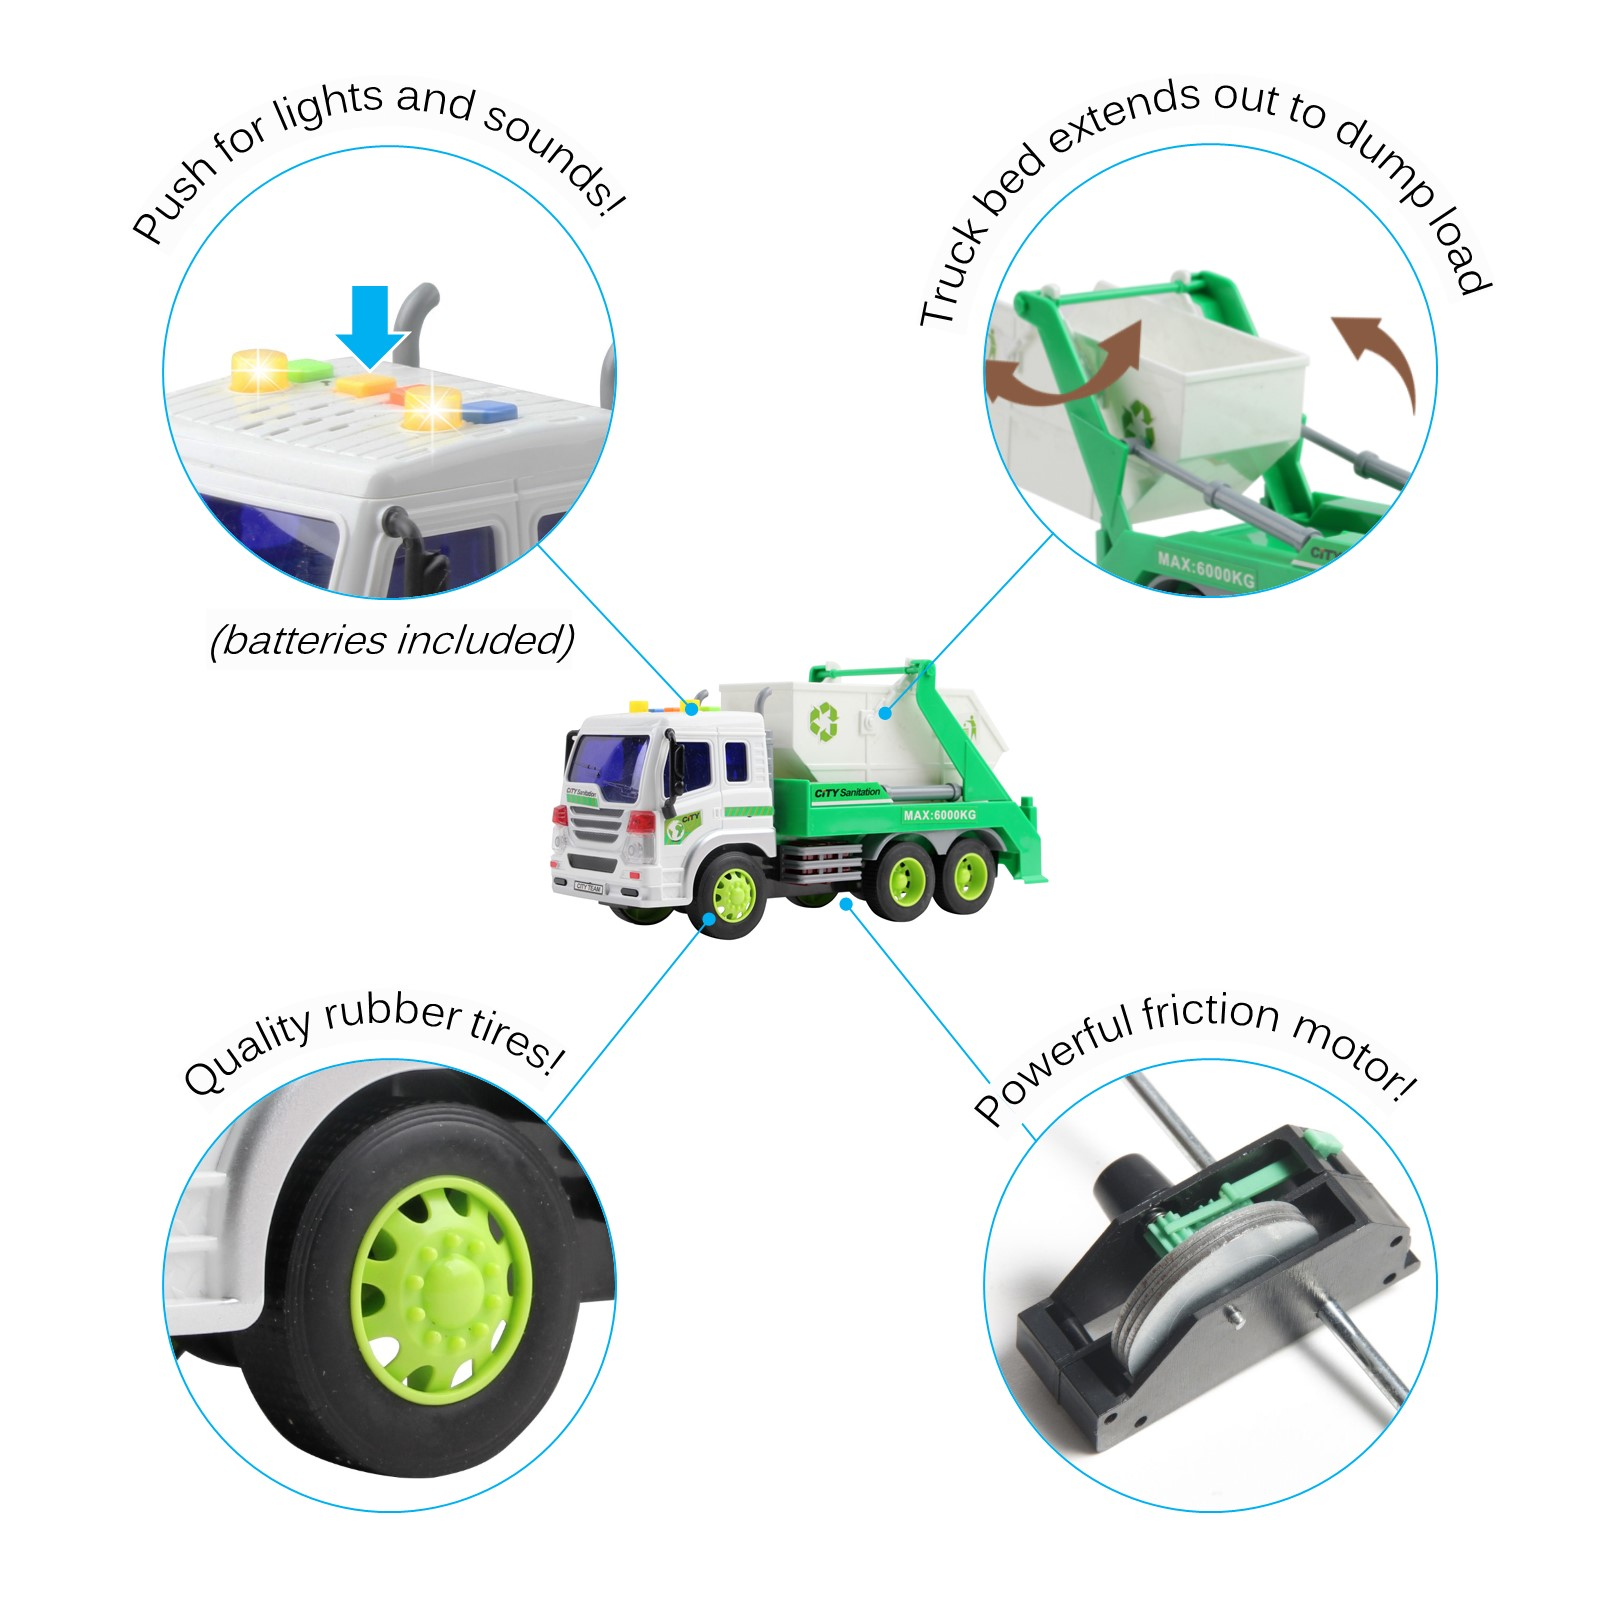 Friction Powered Garbage Truck With Lights And Sounds Lift Up Body 116 Scale Durable Kids Dump Sanitation Push And Go Toy Car Pretend Play Transport Vehicle Great Gift For Children Boys Girls